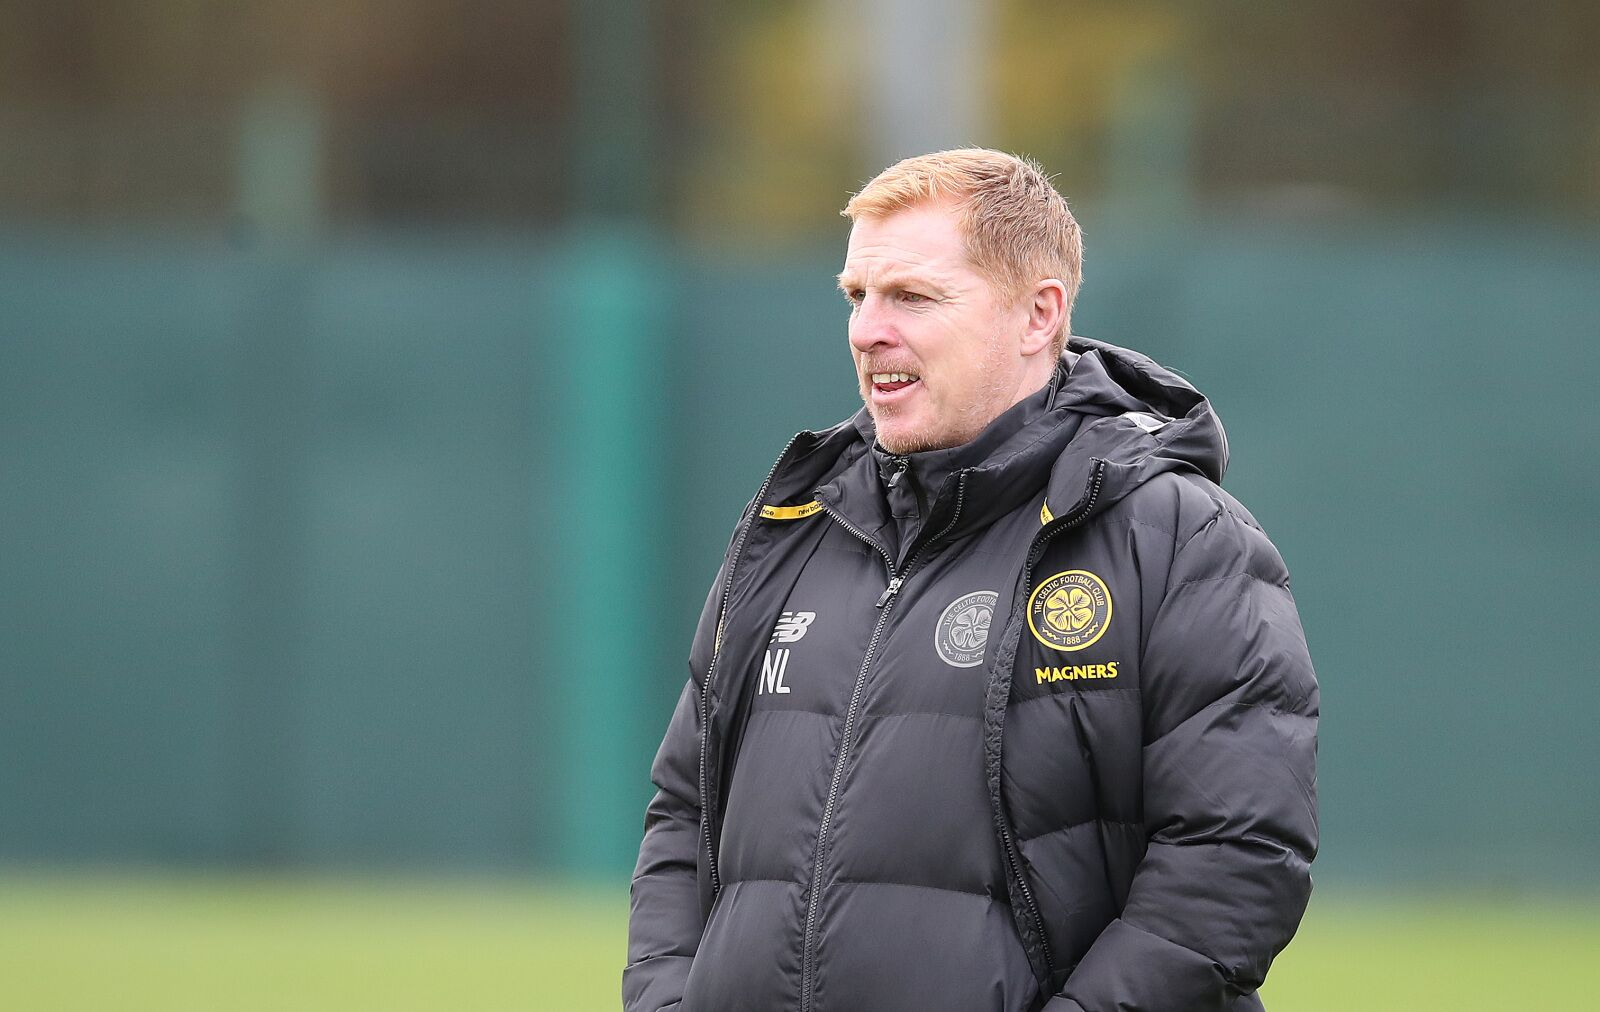 Celtic boss makes surprising admission about new signing